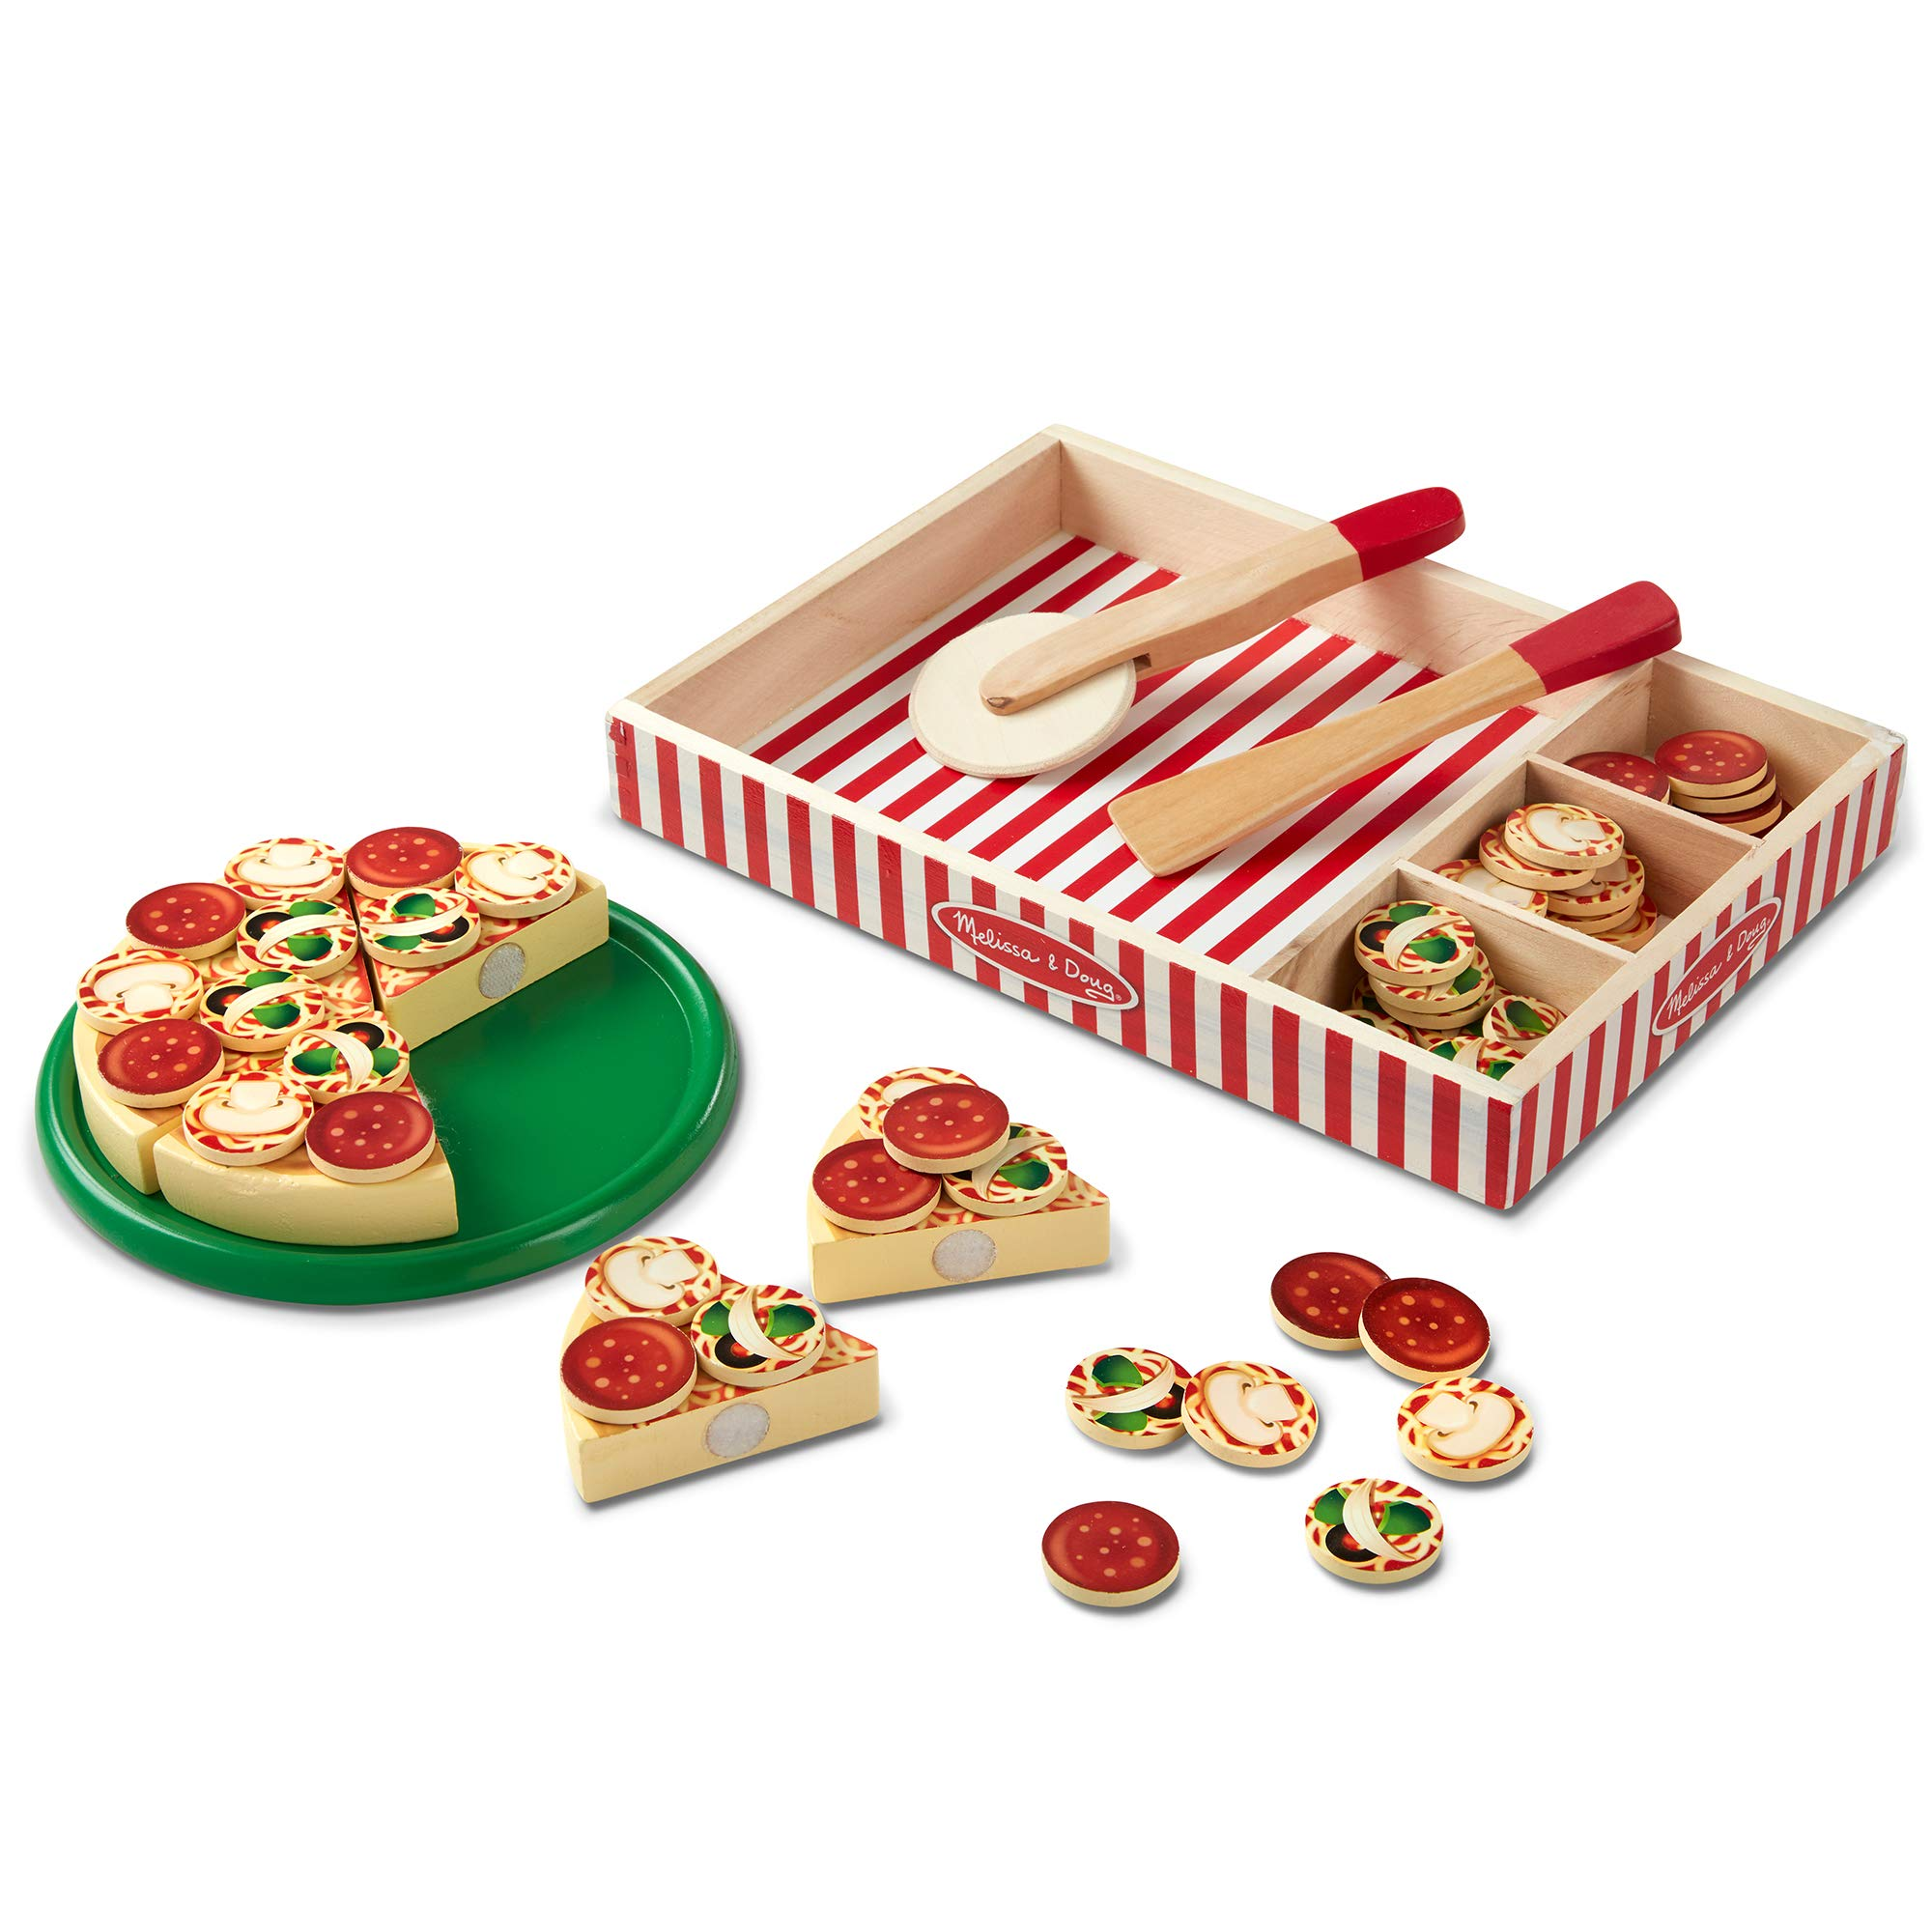 Melissa & Doug Pizza Party Wooden Play Food (Pretend Play Pizza Set, Self-Sticking Tabs, 54+ Pieces, Great Gift for Girls and Boys - Best for 3, 4, and 5 Year Olds) by Melissa & Doug